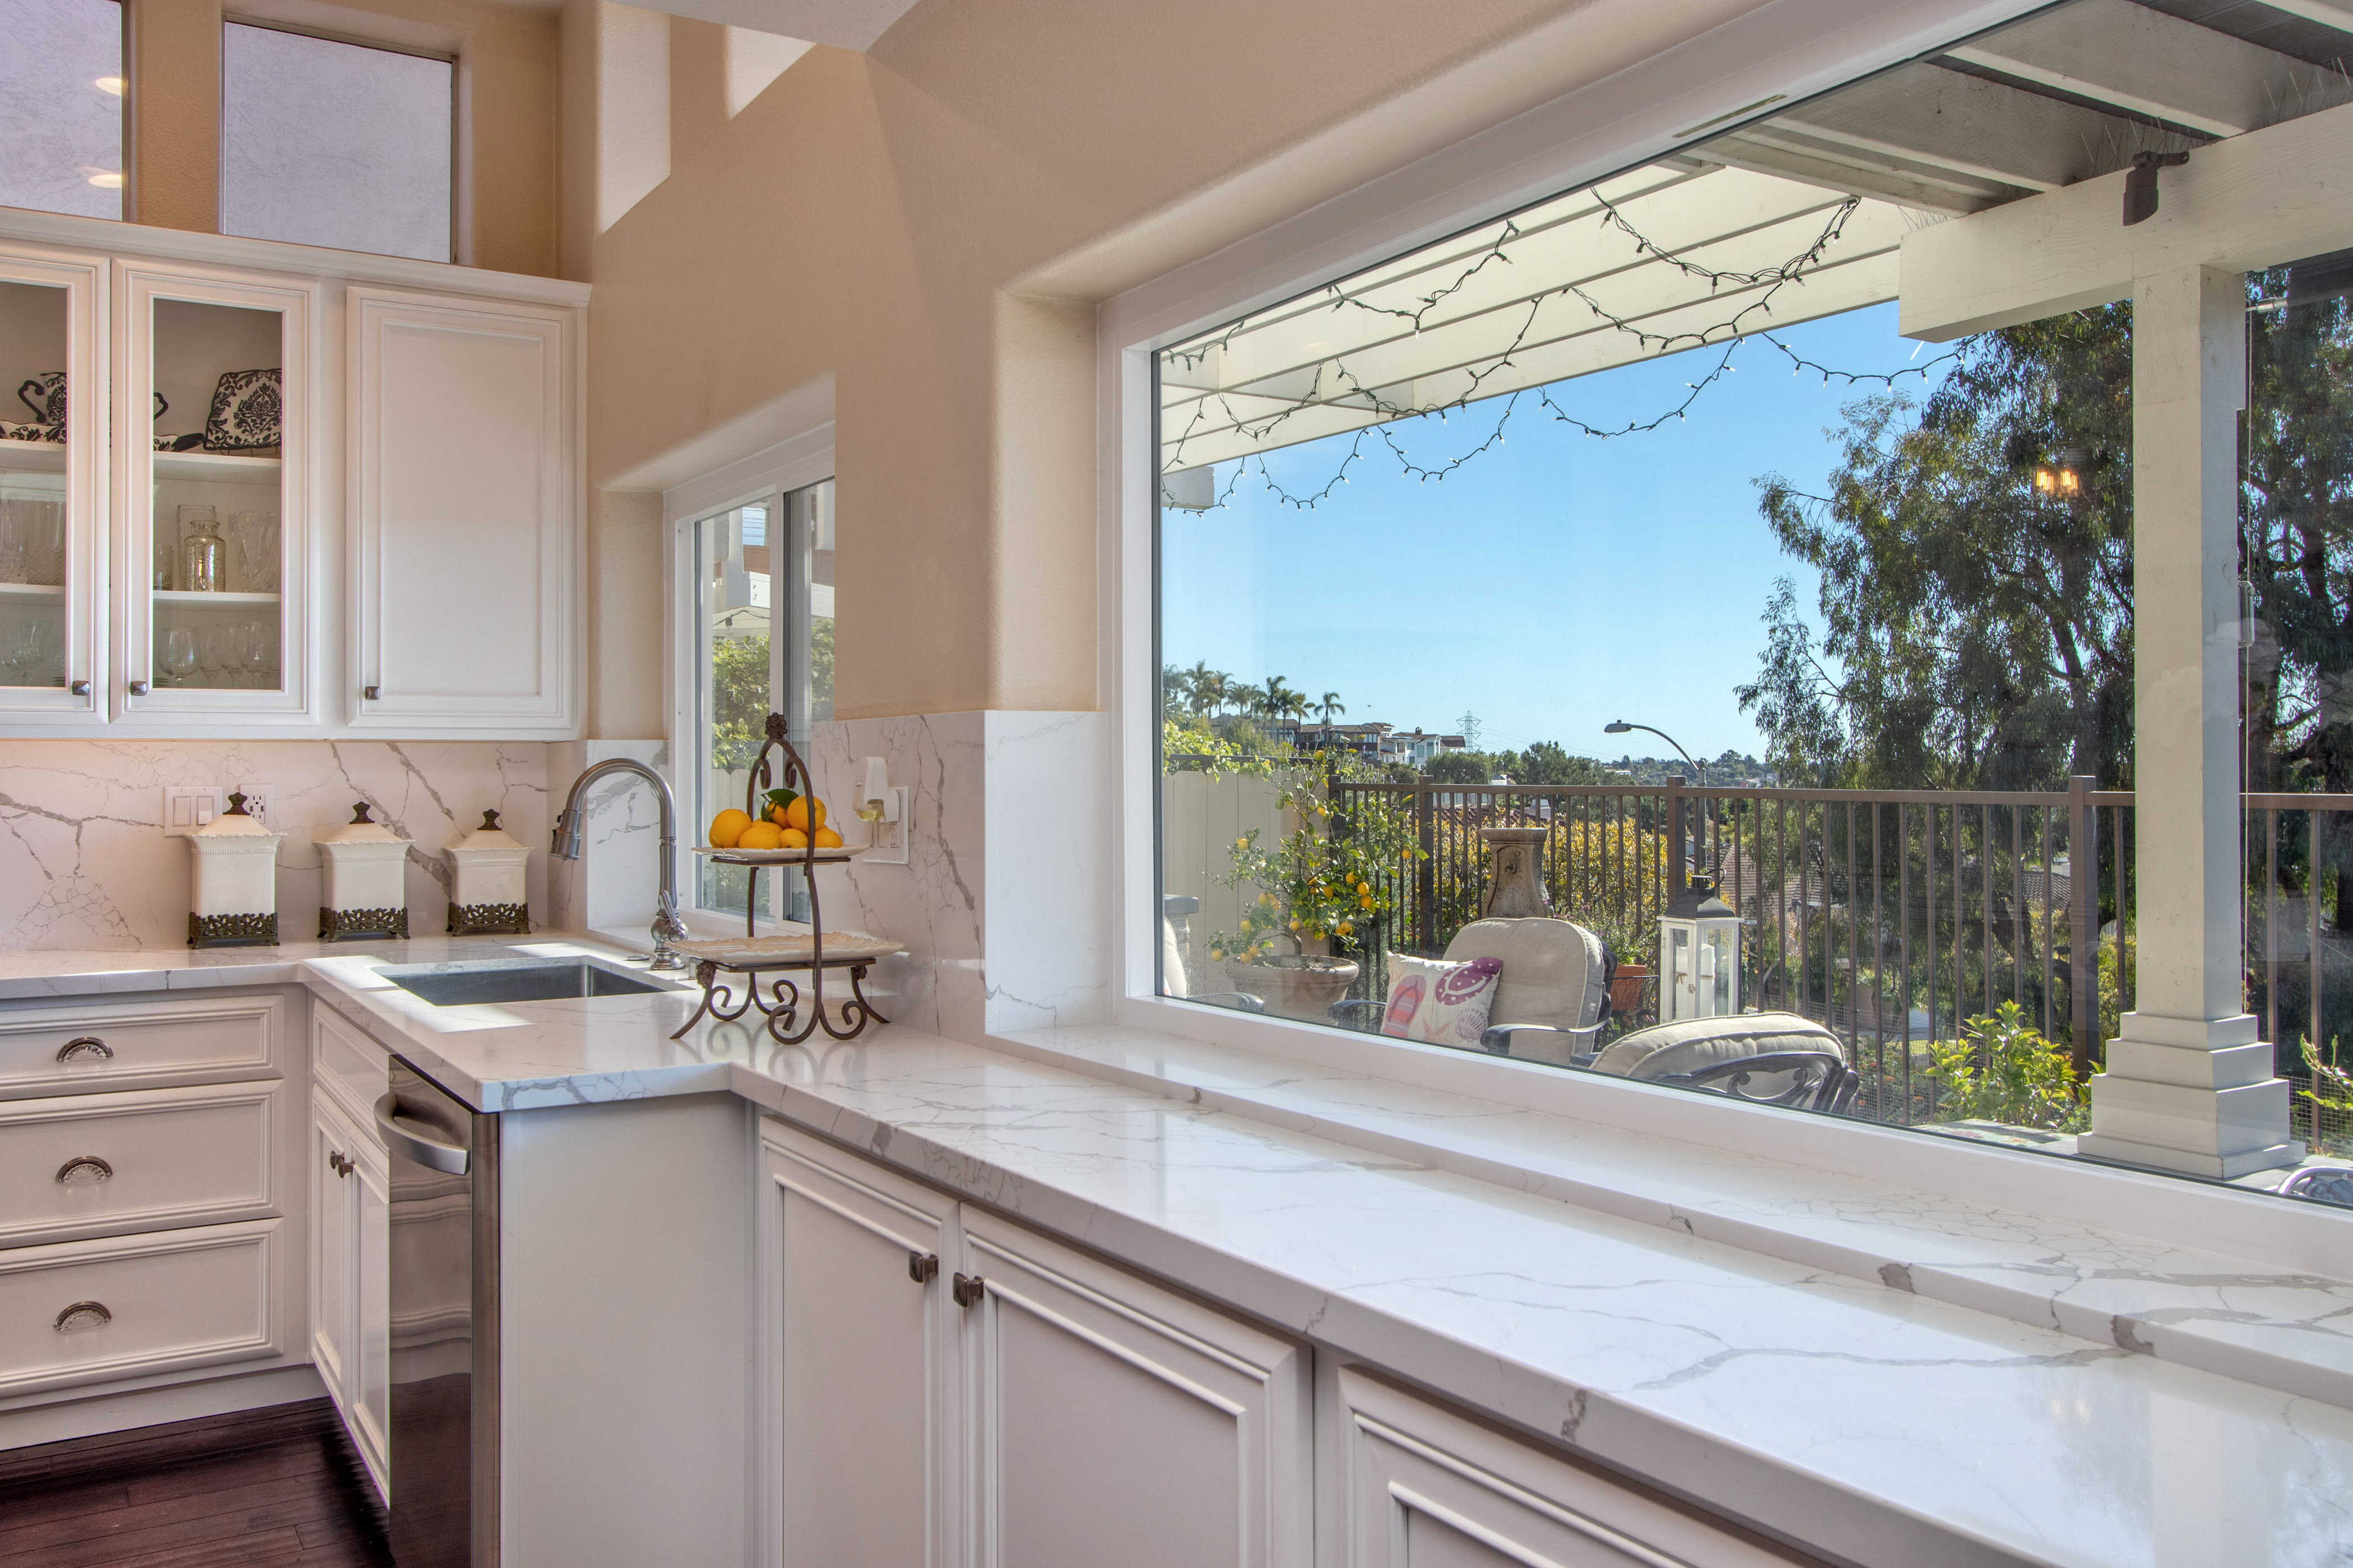 Carlsbad-Cabinet-Refacing-Project-3